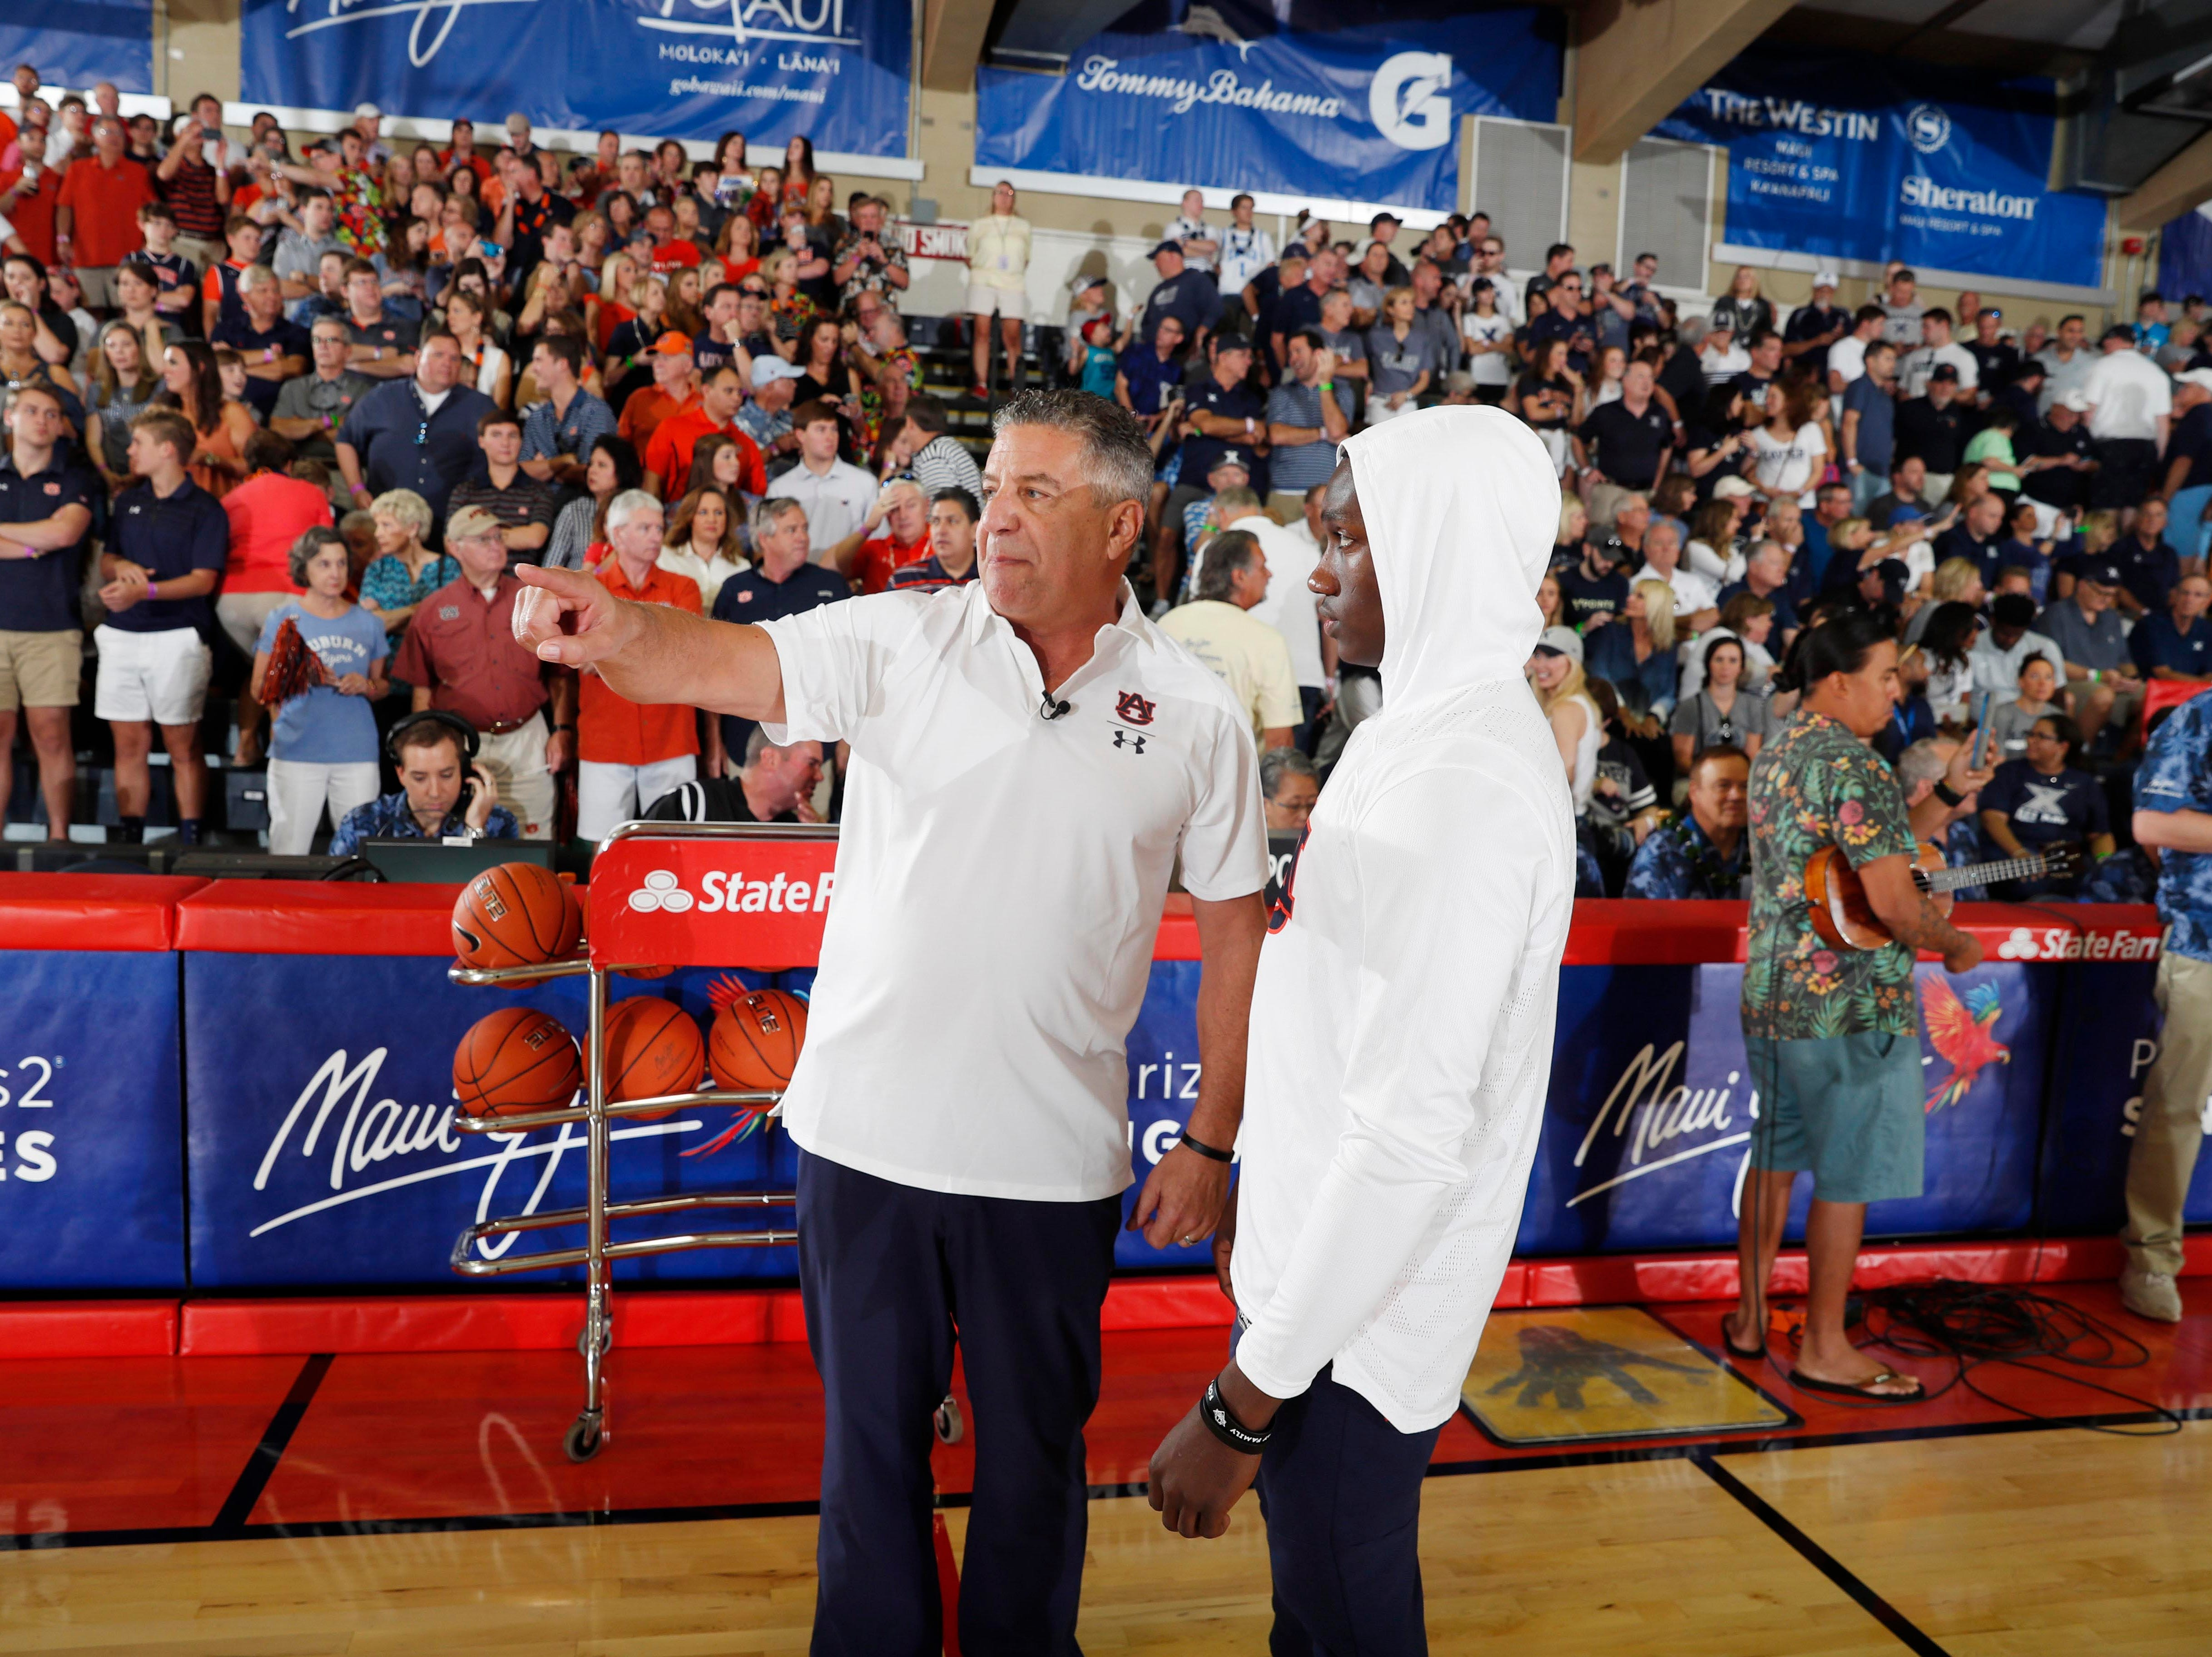 Nov 19, 2018; Lahaina, HI, USA; Auburn Tigers coach Bruce Pearl talks with guard Jared Harper (1) before the game against the Xavier Musketeers during the first round games of the Maui Jim Maui Invitational at Lahaina Civic Center. Mandatory Credit: Brian Spurlock-USA TODAY Sports